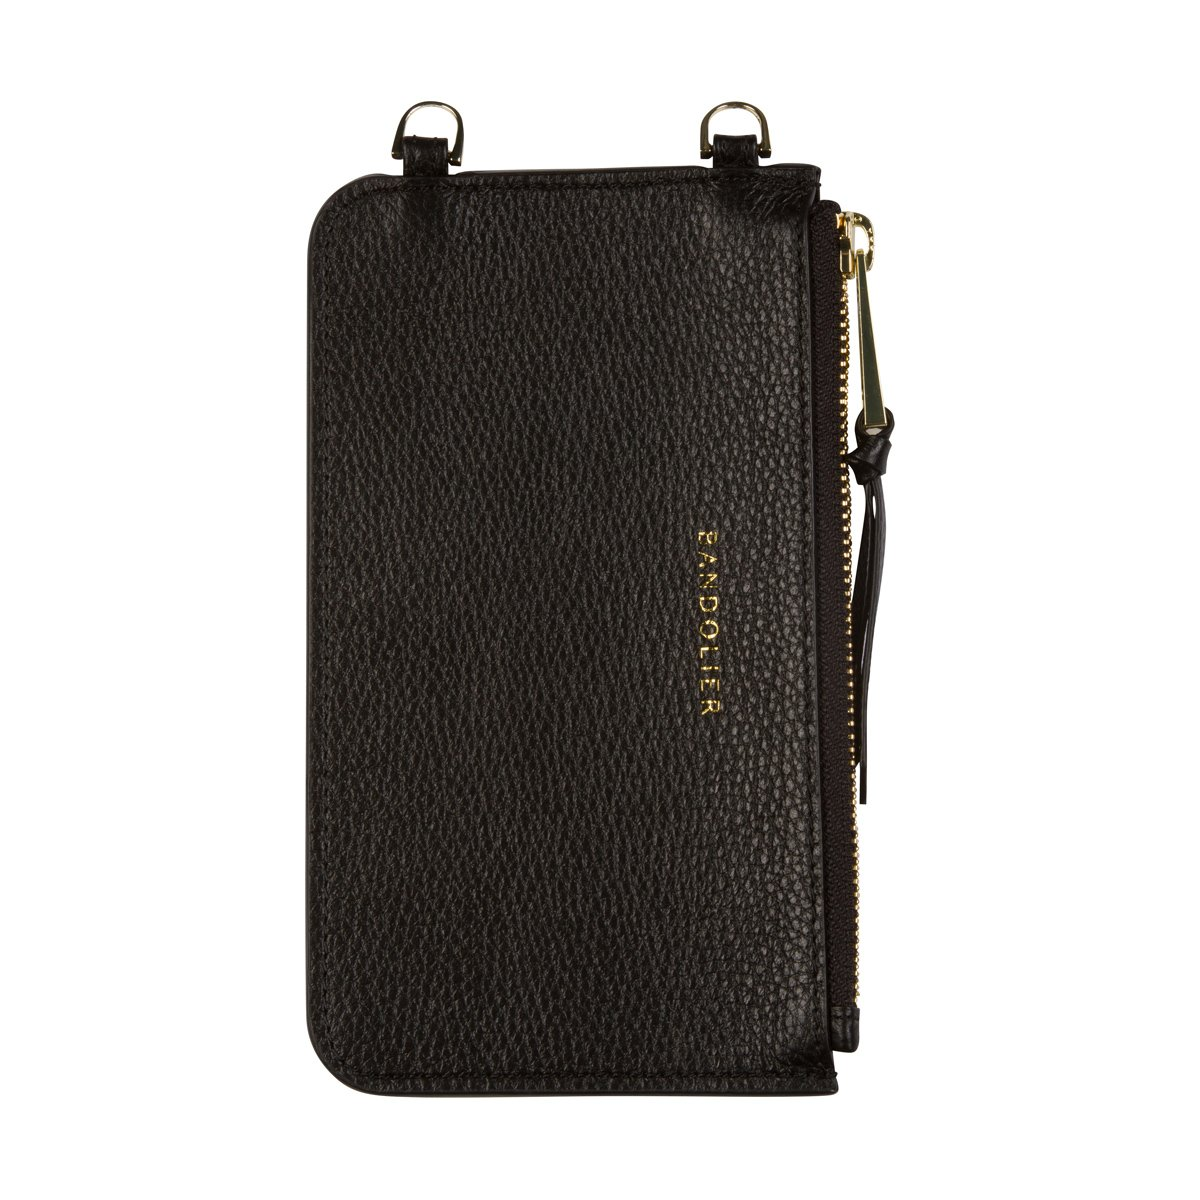 Bandolier [Emma] Leather Zip Pouch - Black Pebble Leather with Gold Detail - Compatible with All Bandolier Phone Cases by Bandolier